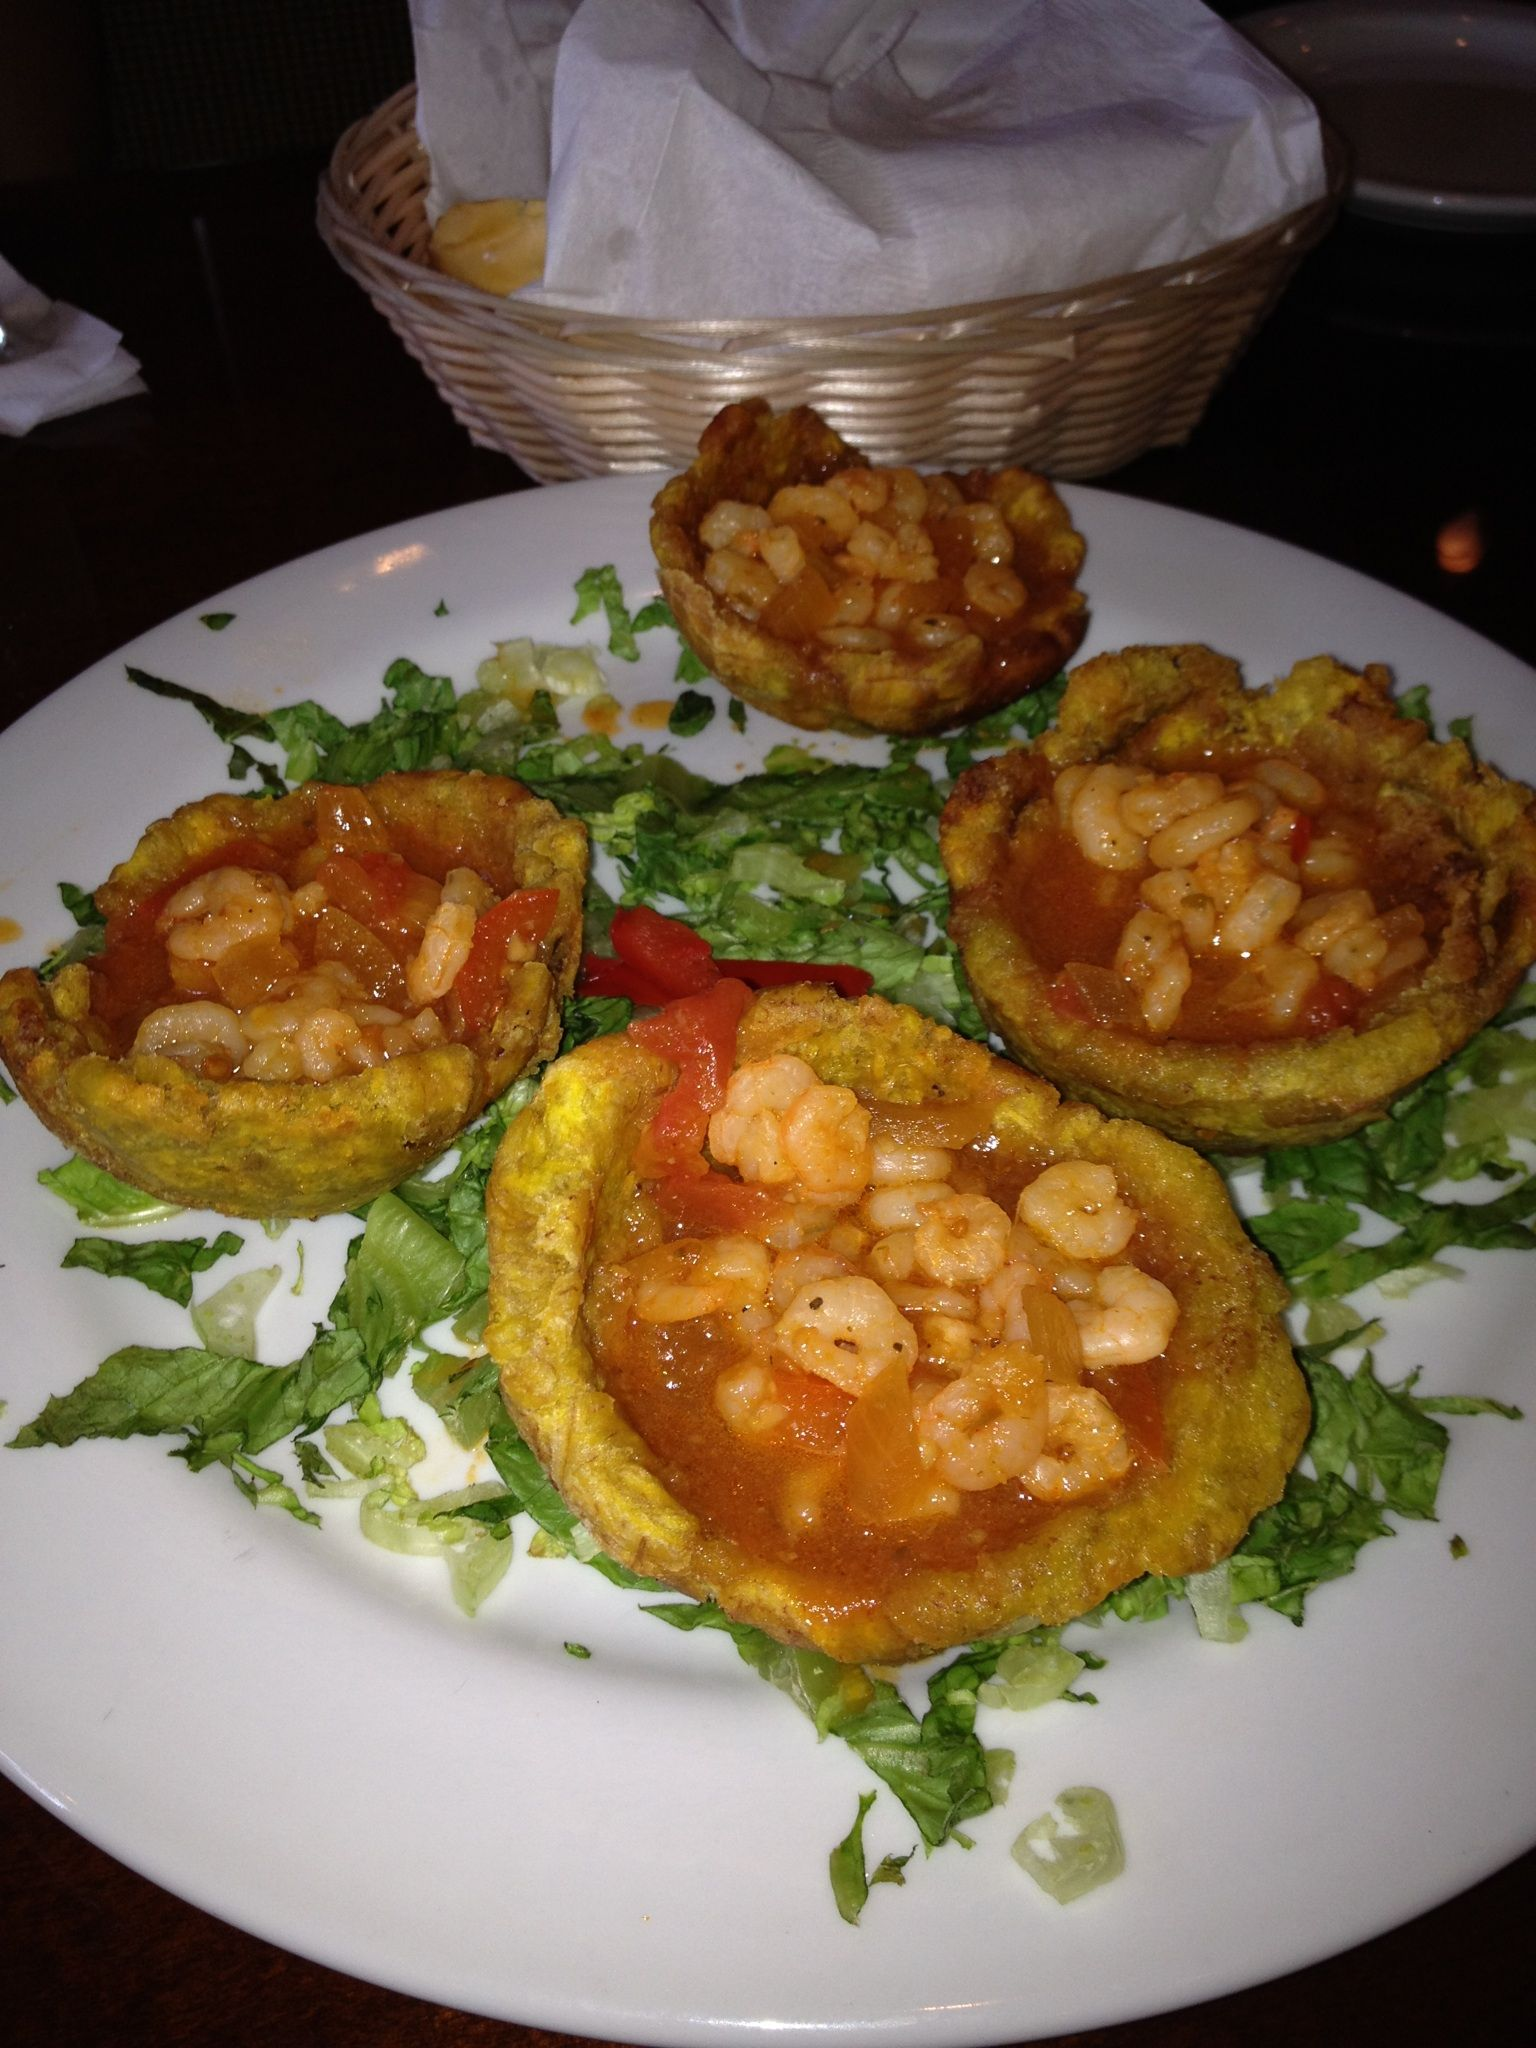 Shrimp tistones dominican food so fating but taste amazingggg food shrimp tistones dominican food so fating but taste amazingggg forumfinder Gallery